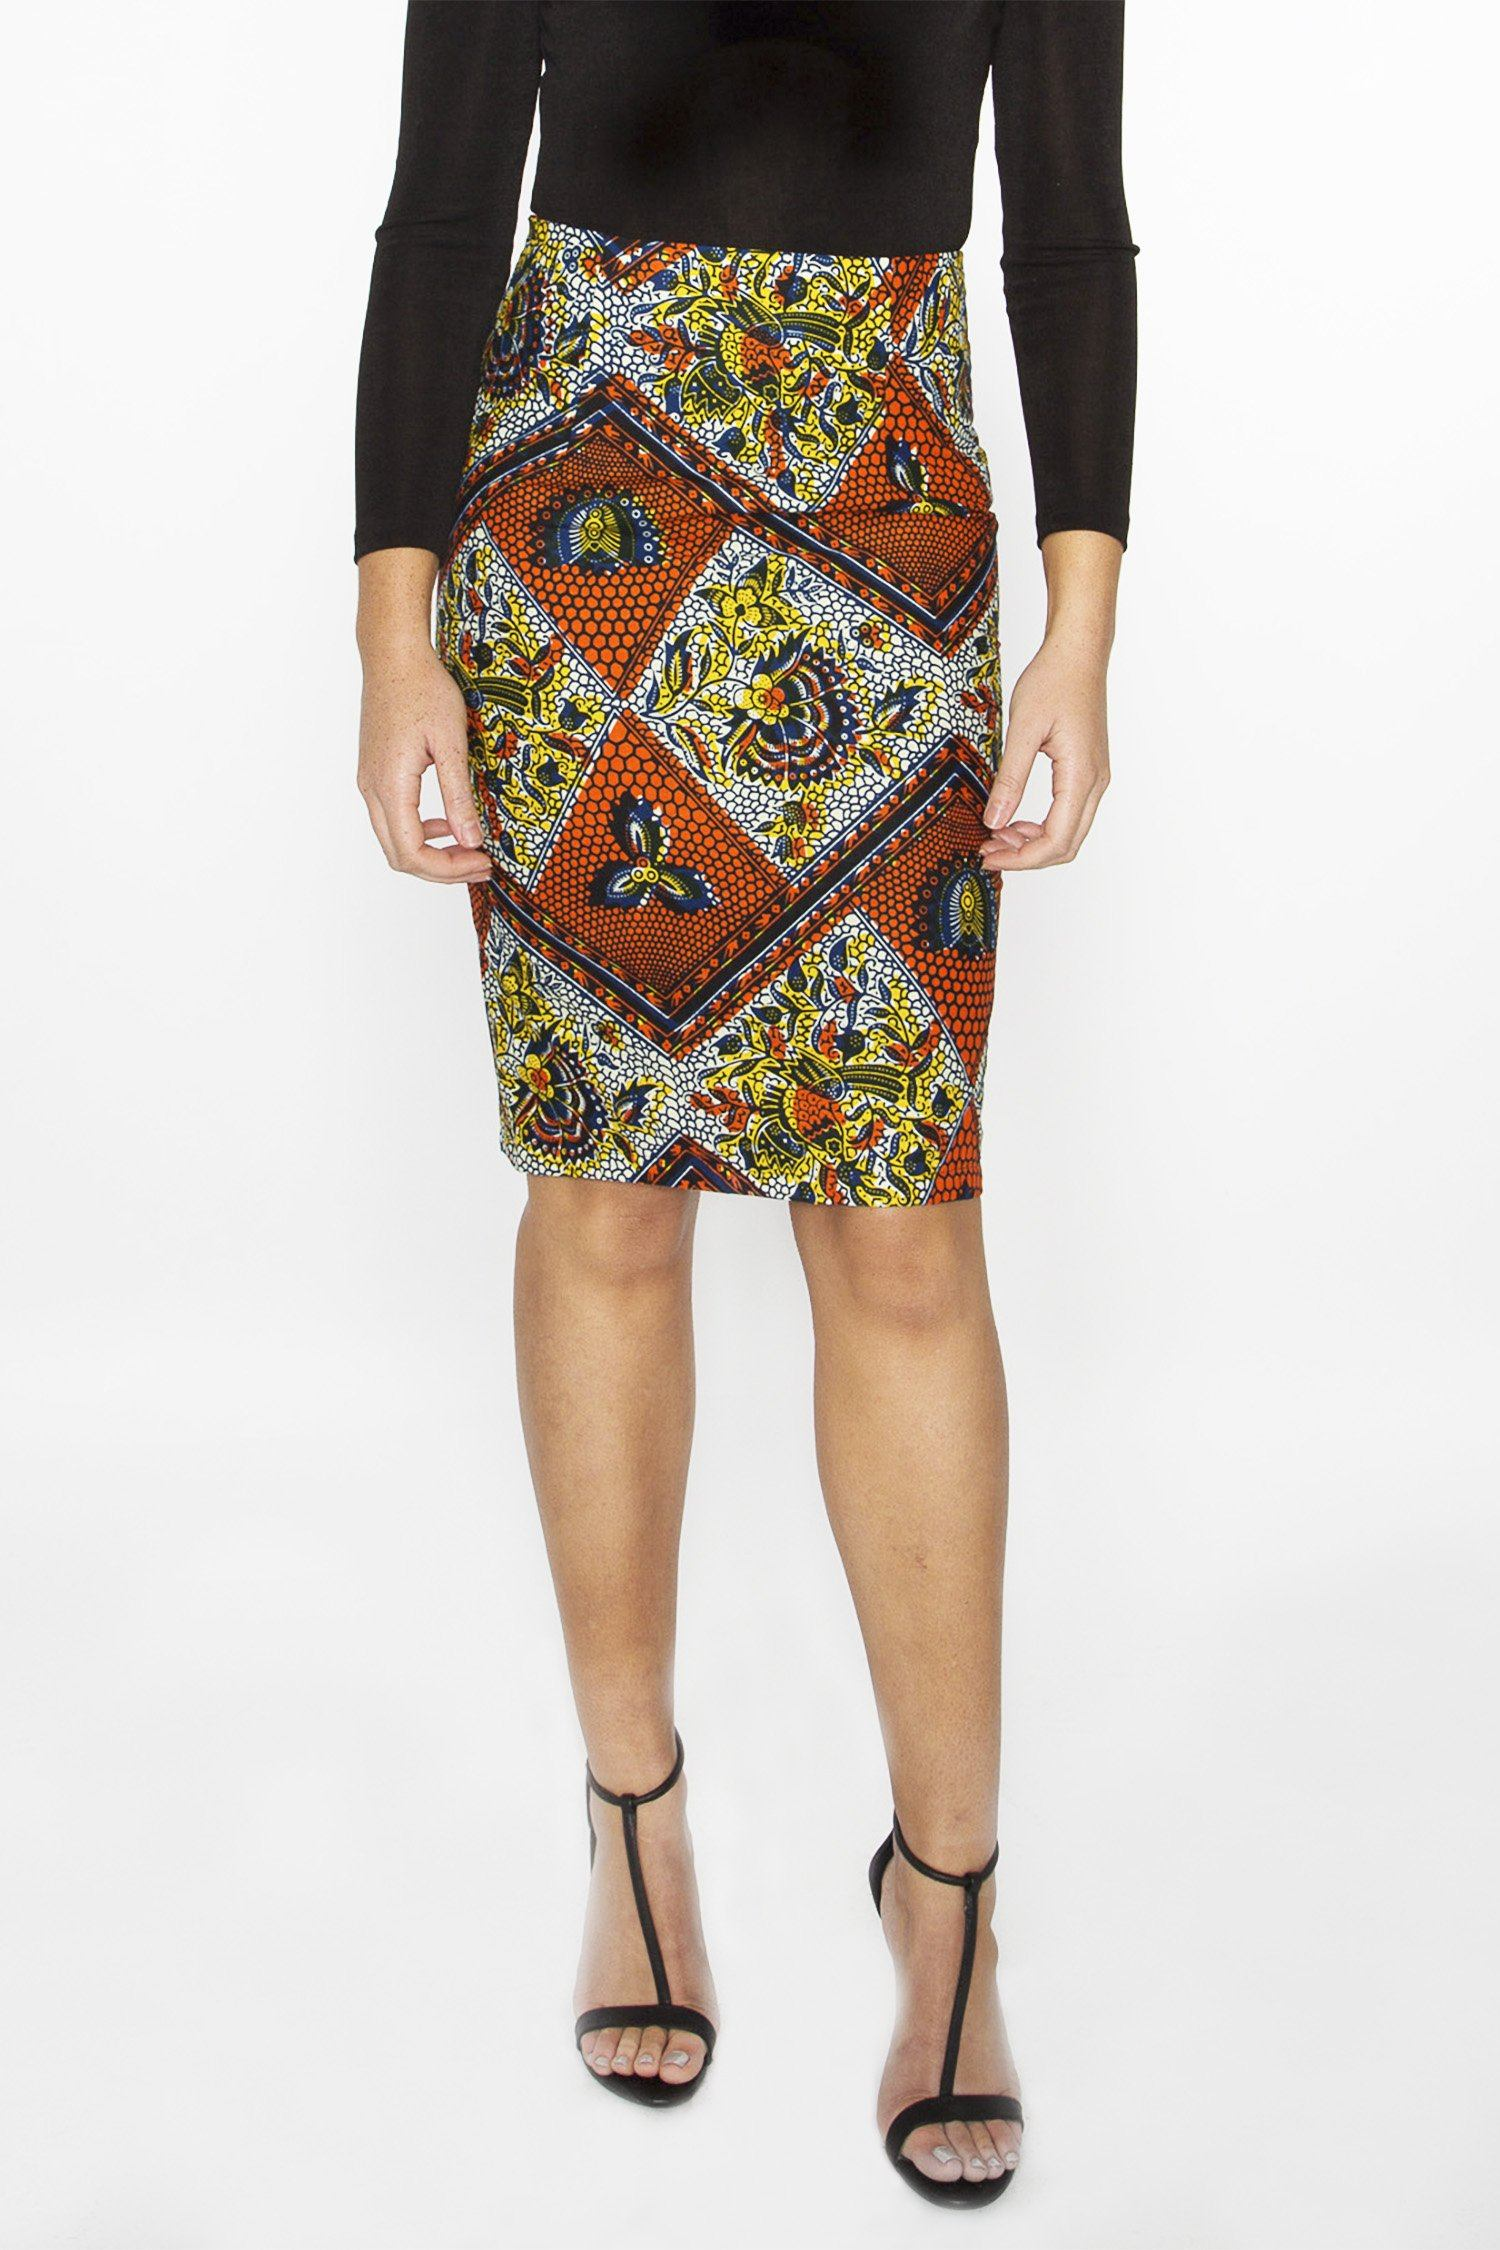 99224ffd2511 African Pencil skirt - Women s